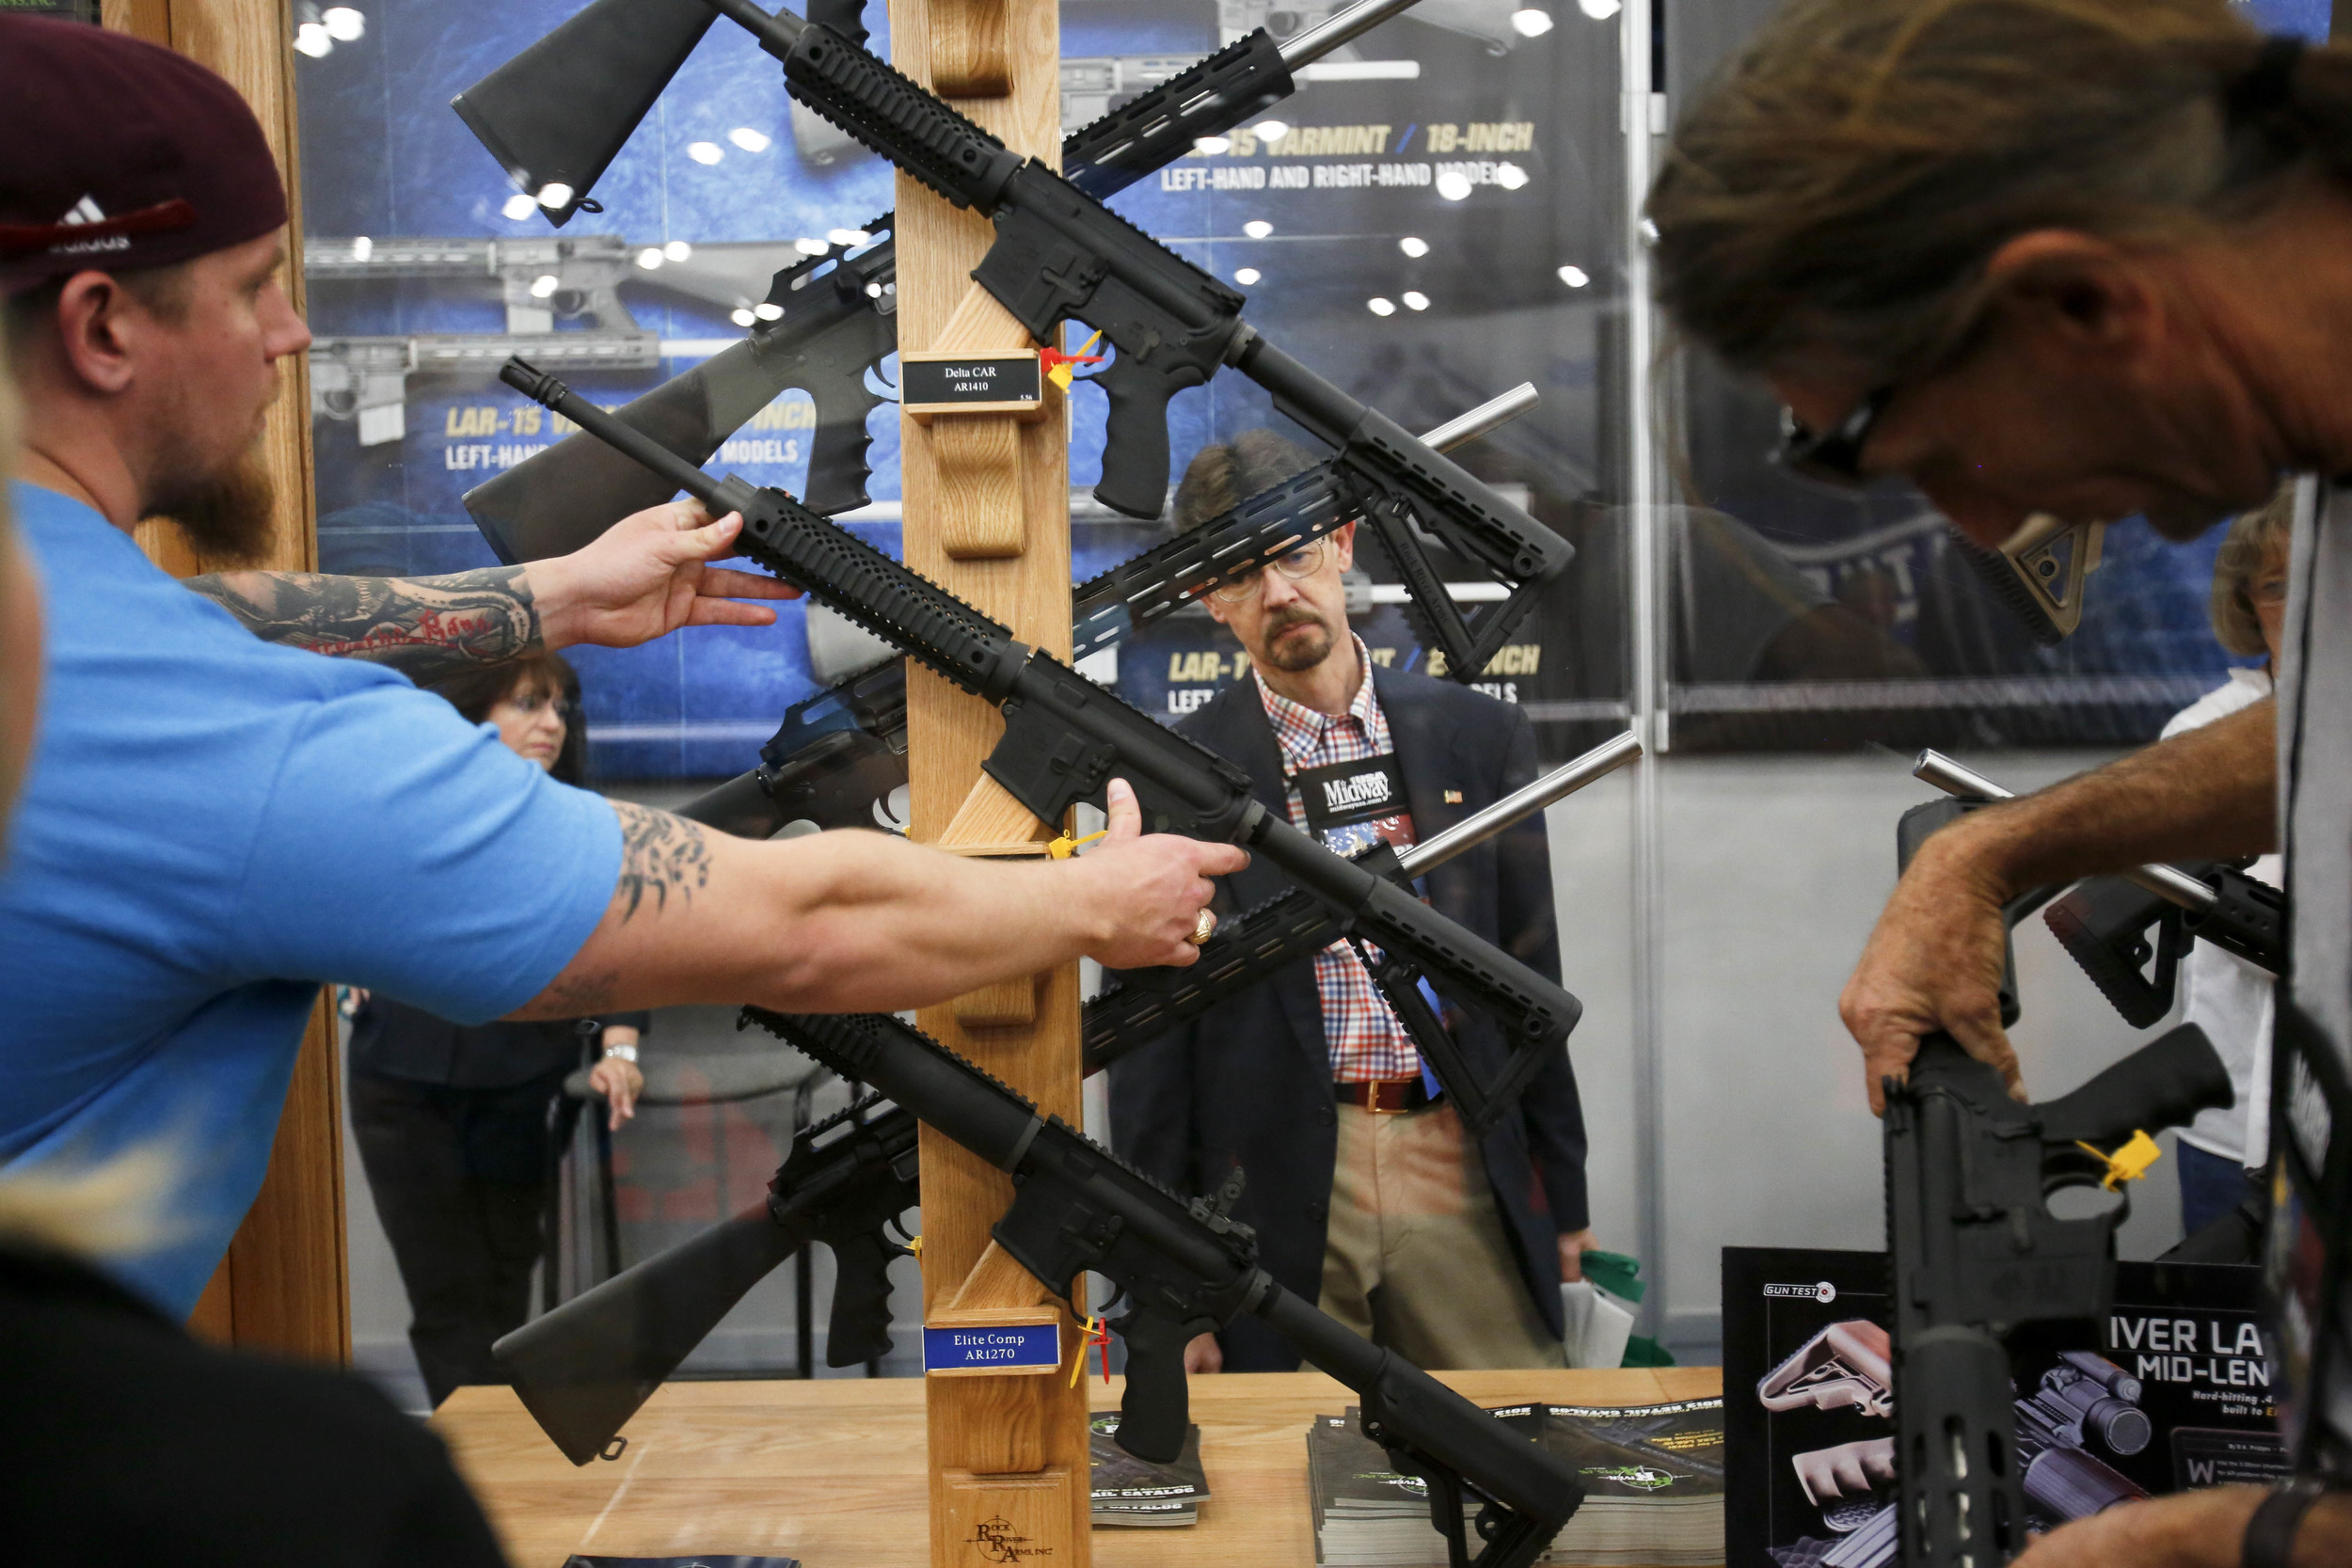 Attendees look at AR15 rifles at the 2013 National Rifle Association Meeting and Exhibits May 4, 2013 in Houston.